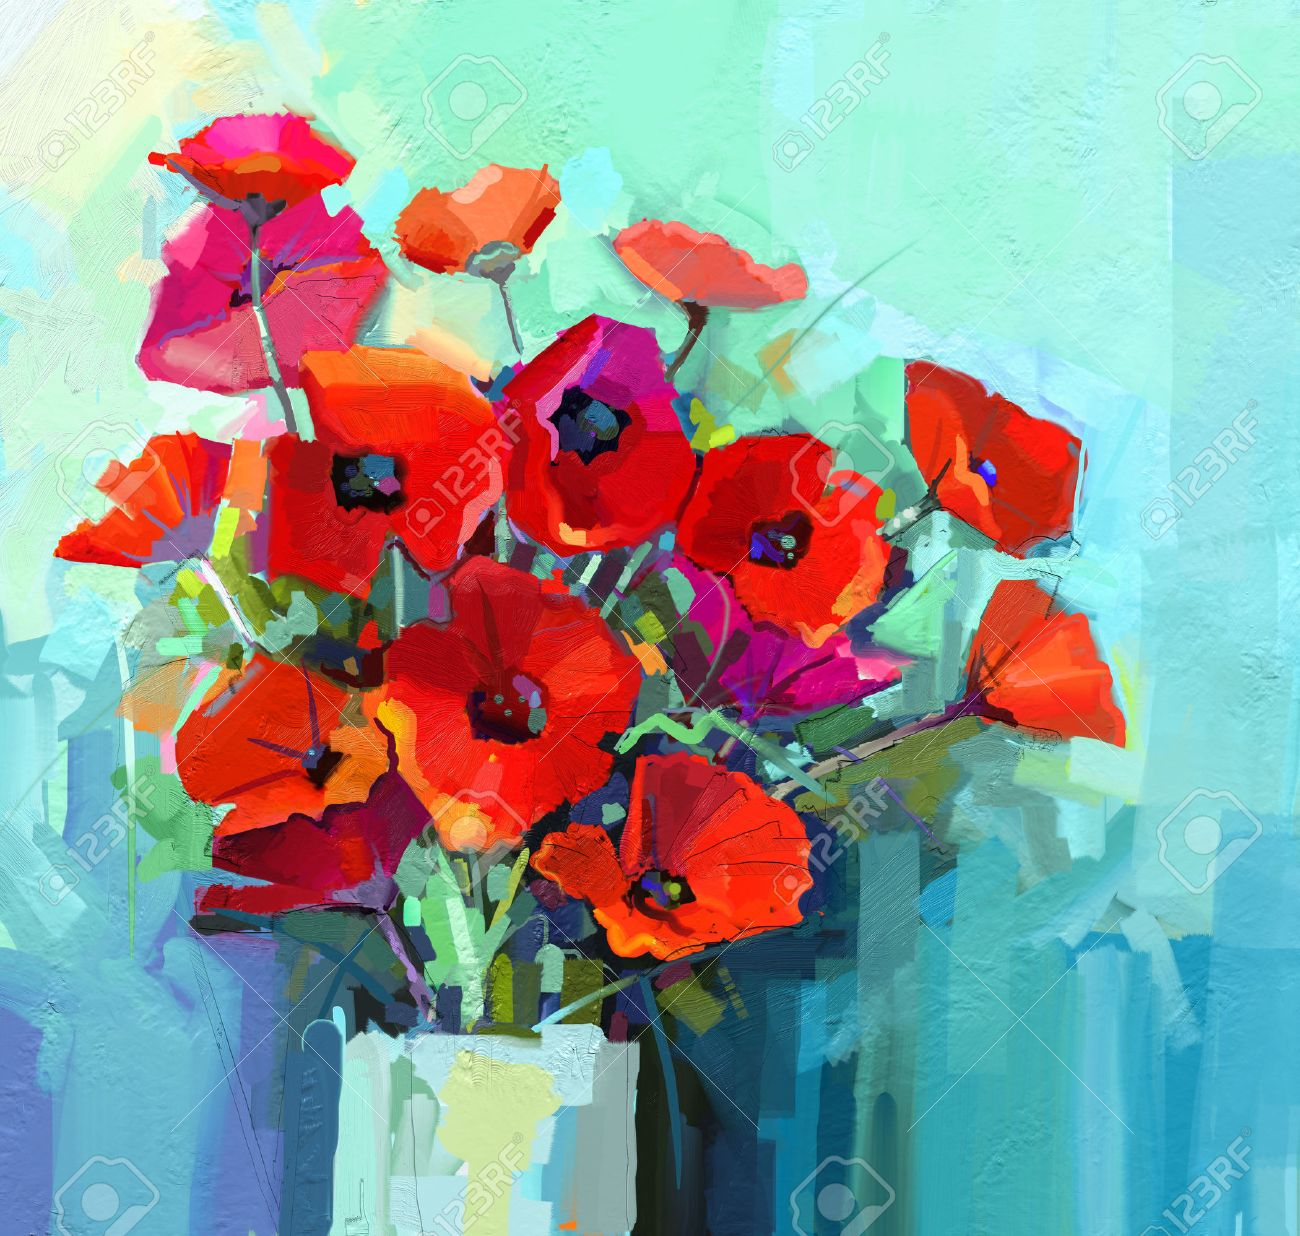 Oil Painting - Still life of red and pink color flower. Colorful Bouquet of poppy flowers in vase. Color green and blue background. Hand Paint floral Impressionist style. - 46809205